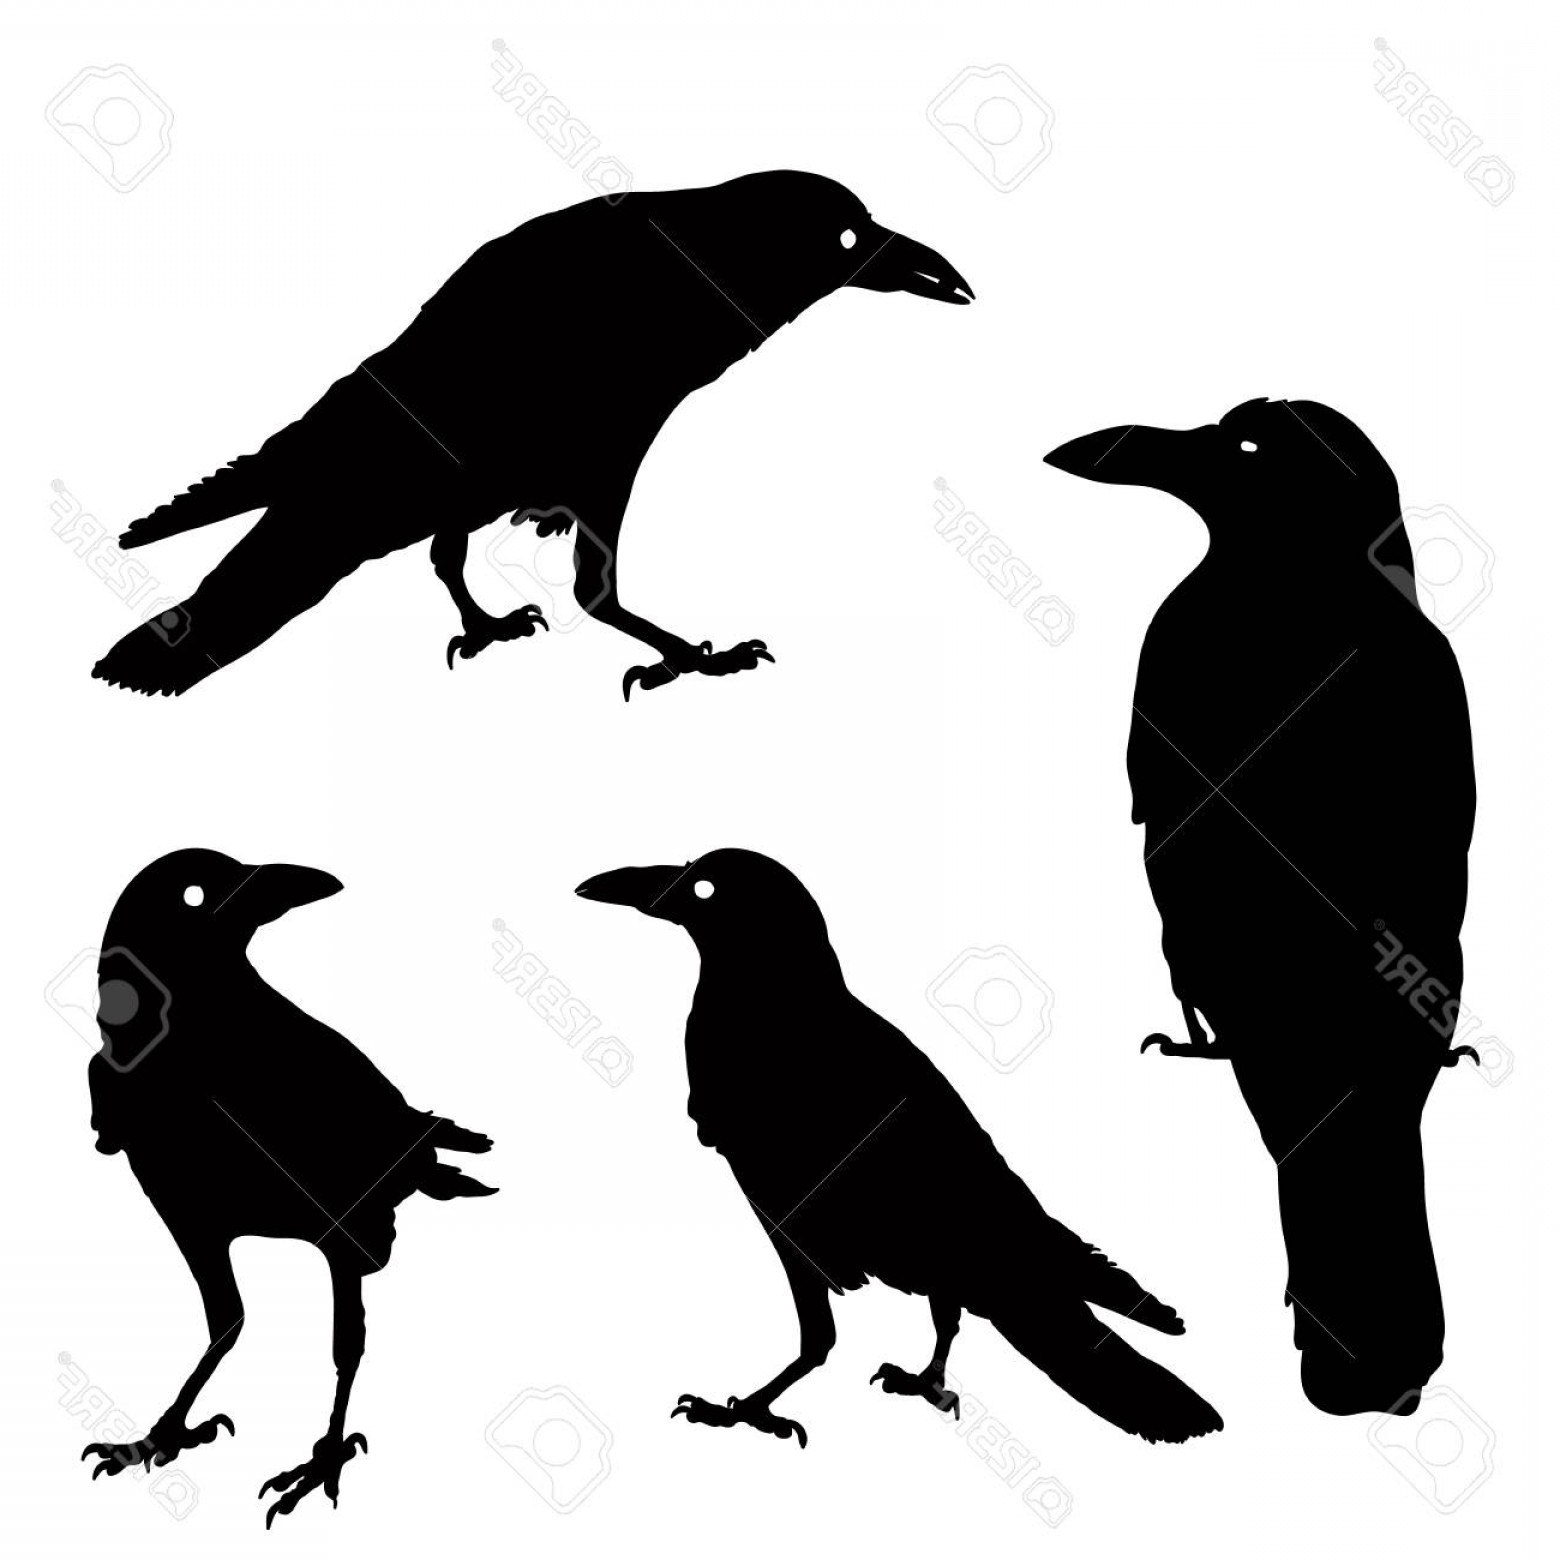 1560x1560 Photostock Vector Silhouette Of A Crows In Different Positions